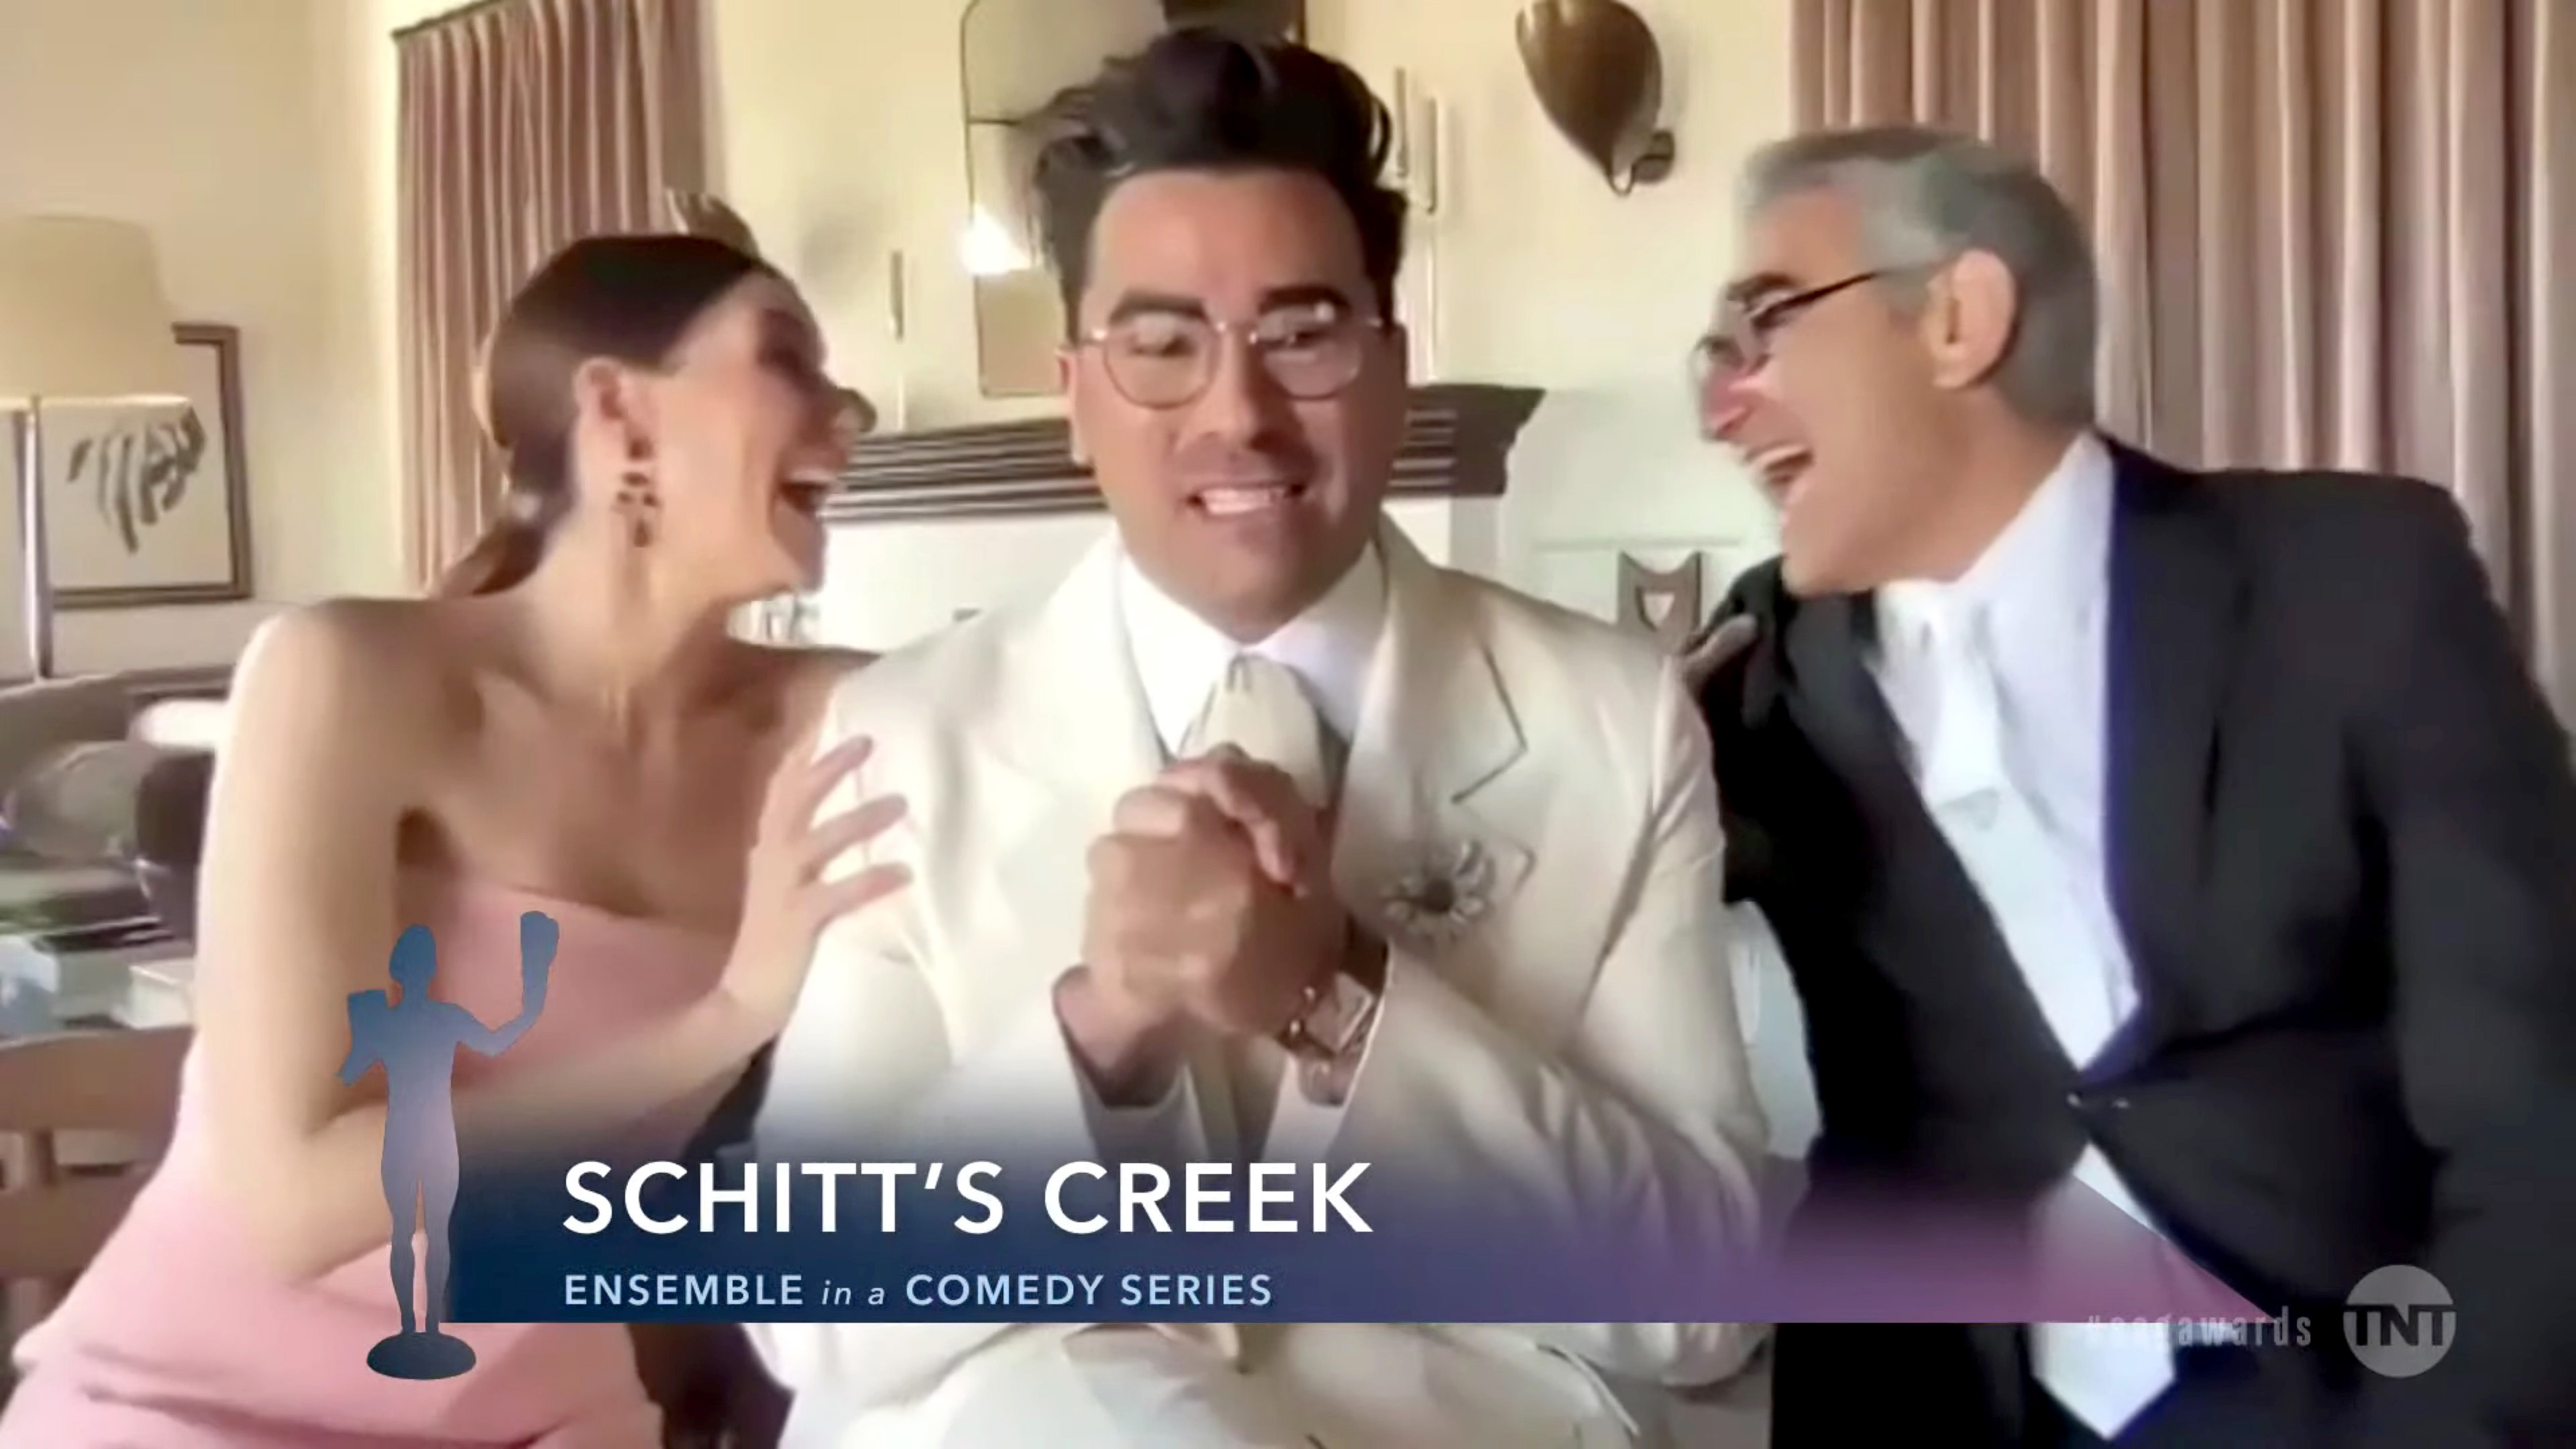 """VARIOUS CITIES - APRIL 04: (L-R) In this screengrab released on April 4, 2021, Sarah Levy, Dan Levy, and Eugene Levy, winners of Outstanding Performance by an Ensemble in a Comedy Series for """"Schitt's Creek"""", speak during the 27th Annual Screen Actors Guild Awards on April 04, 2021. (Photo by 27th Annual SAG Awards/Getty Images for WarnerMedia)"""